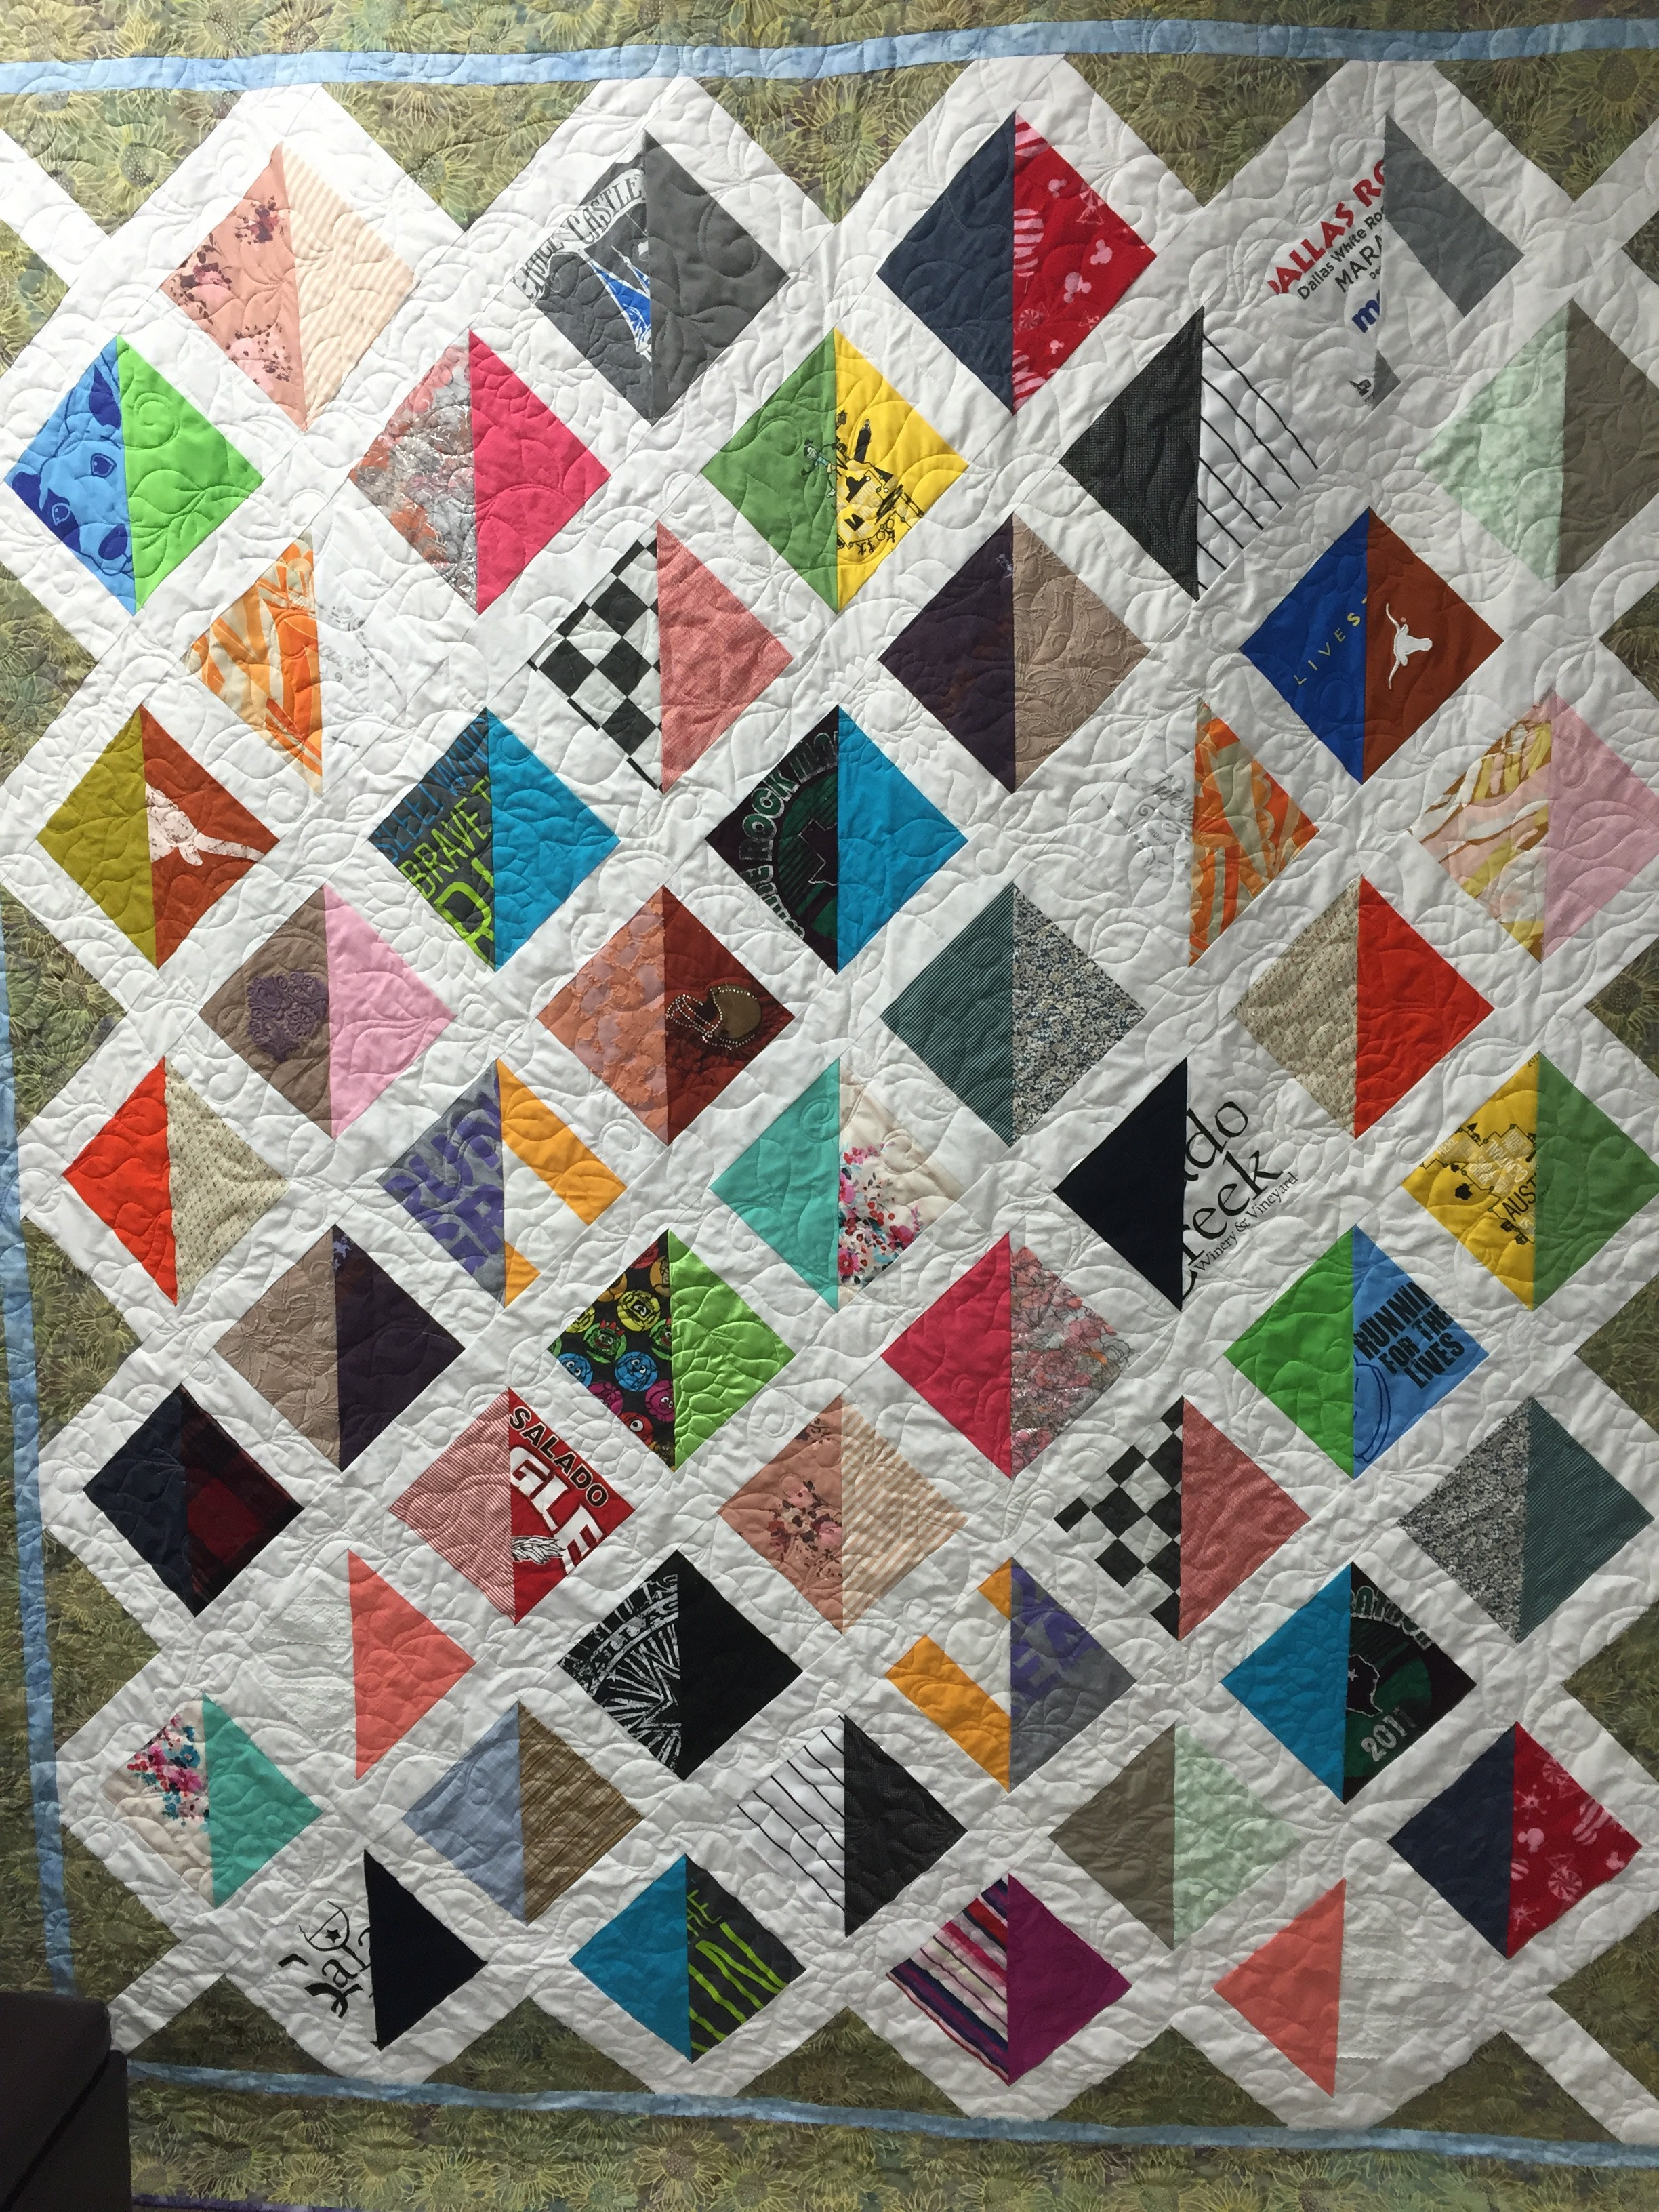 liz s clothes in a memory quilt to comfort her mom over the top